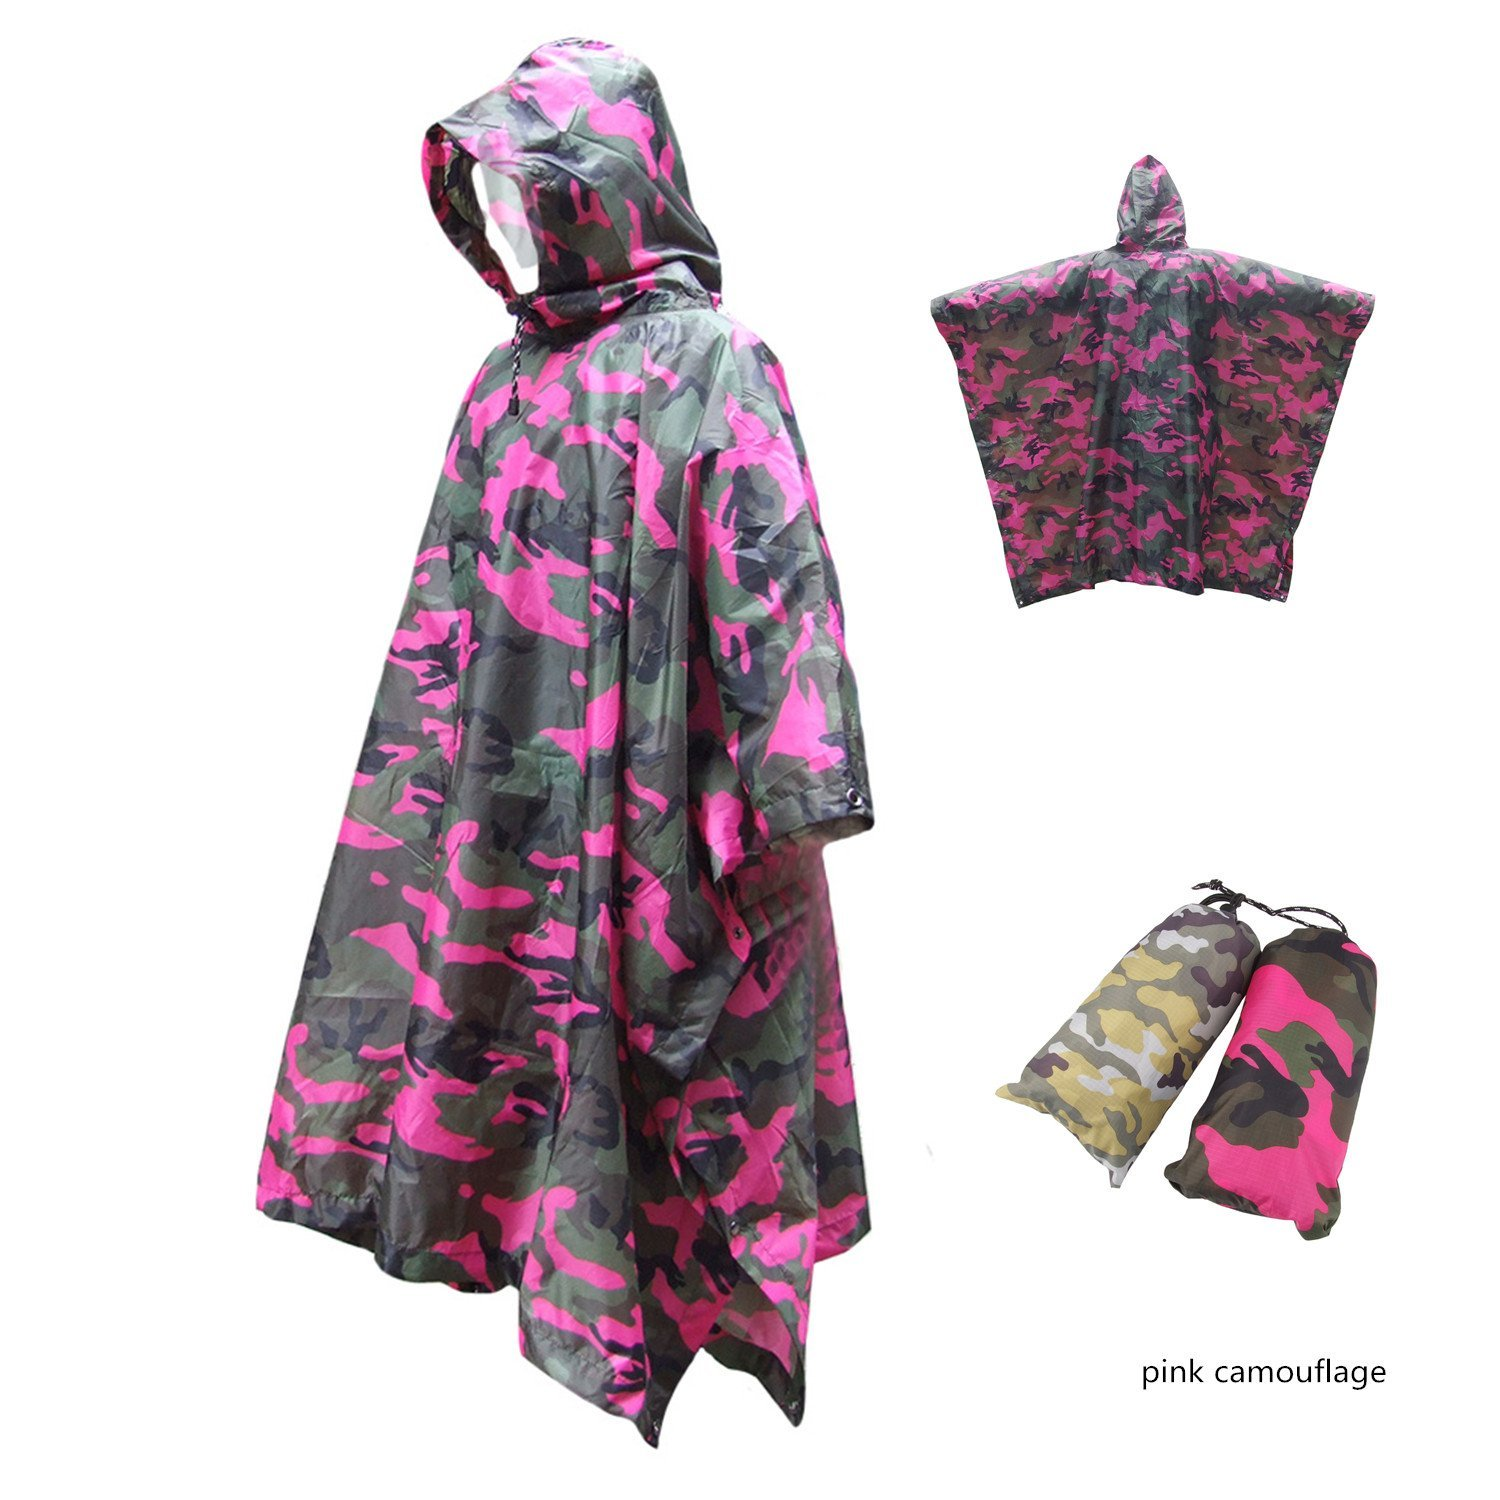 Three in one camouflage raincoat, Multifunction Military Emergency Rain Poncho, started as a tent, moistureproof pad, Unfolding L 86.6in /W 57.5in ,Camouflage, yellow camouflage, pink camouflage